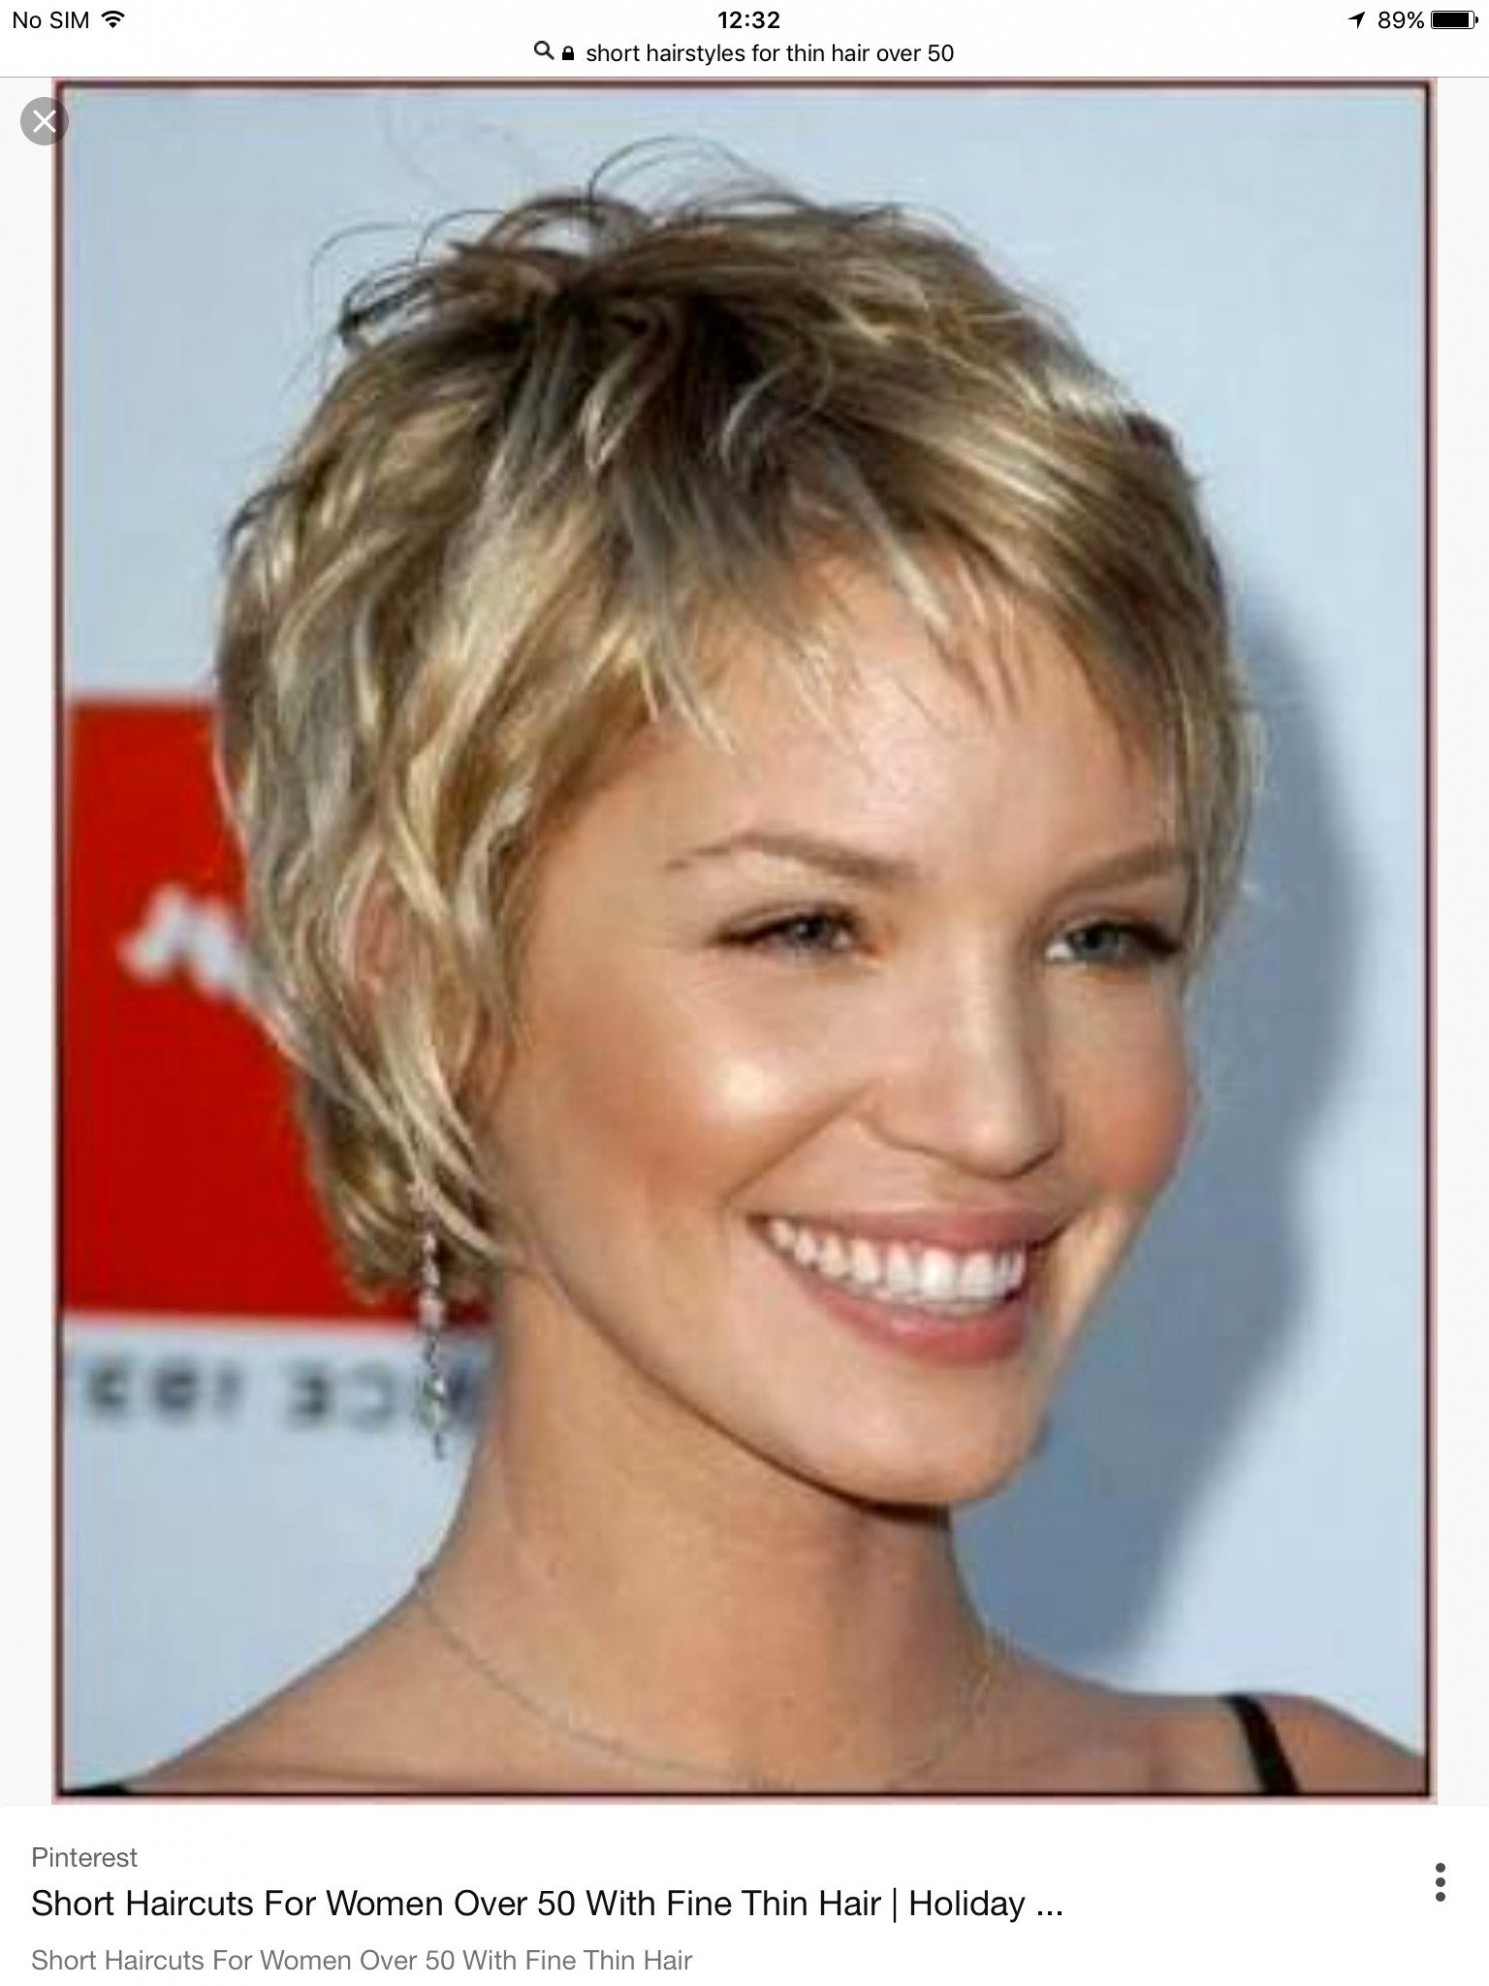 Singular Hairstyles For Fine Hair Over Dye Salon Plus Very Short Short Hairstyles For Square Faces And Fine Hair